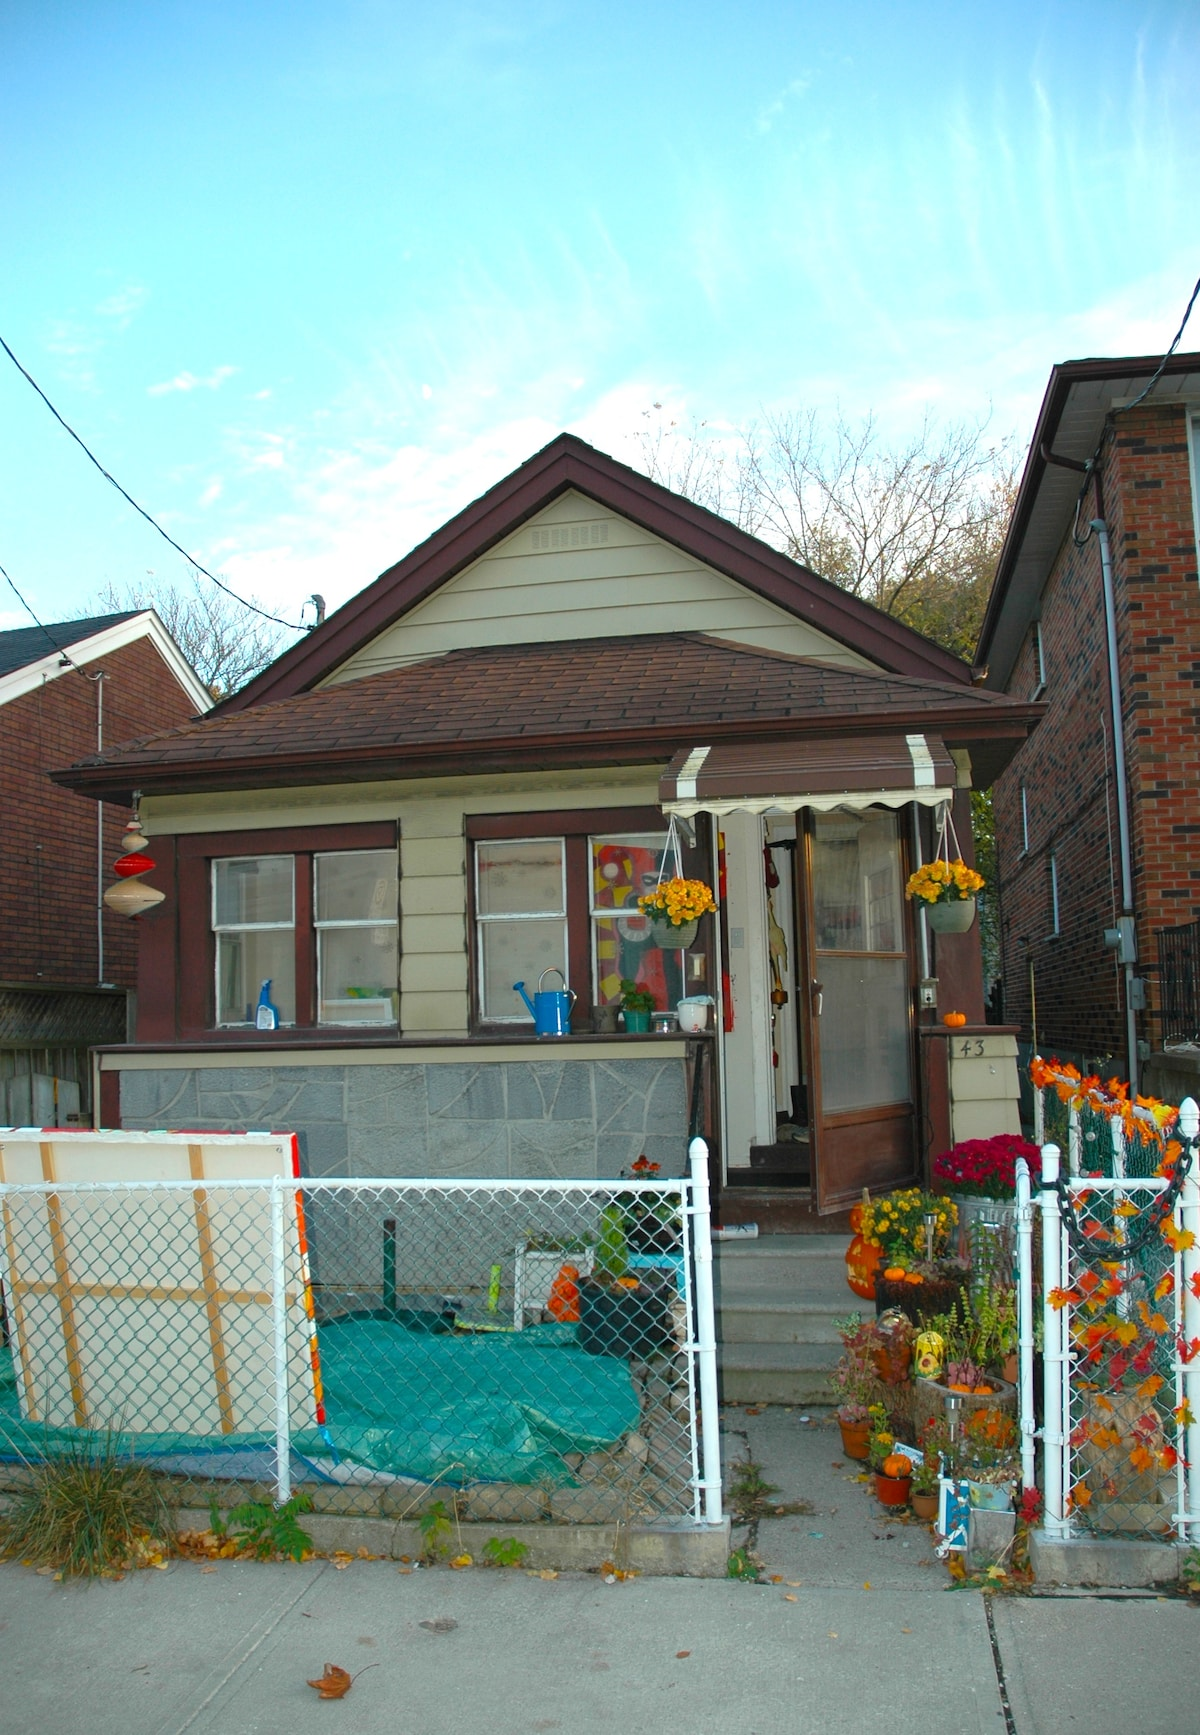 my little house In Toronto !!